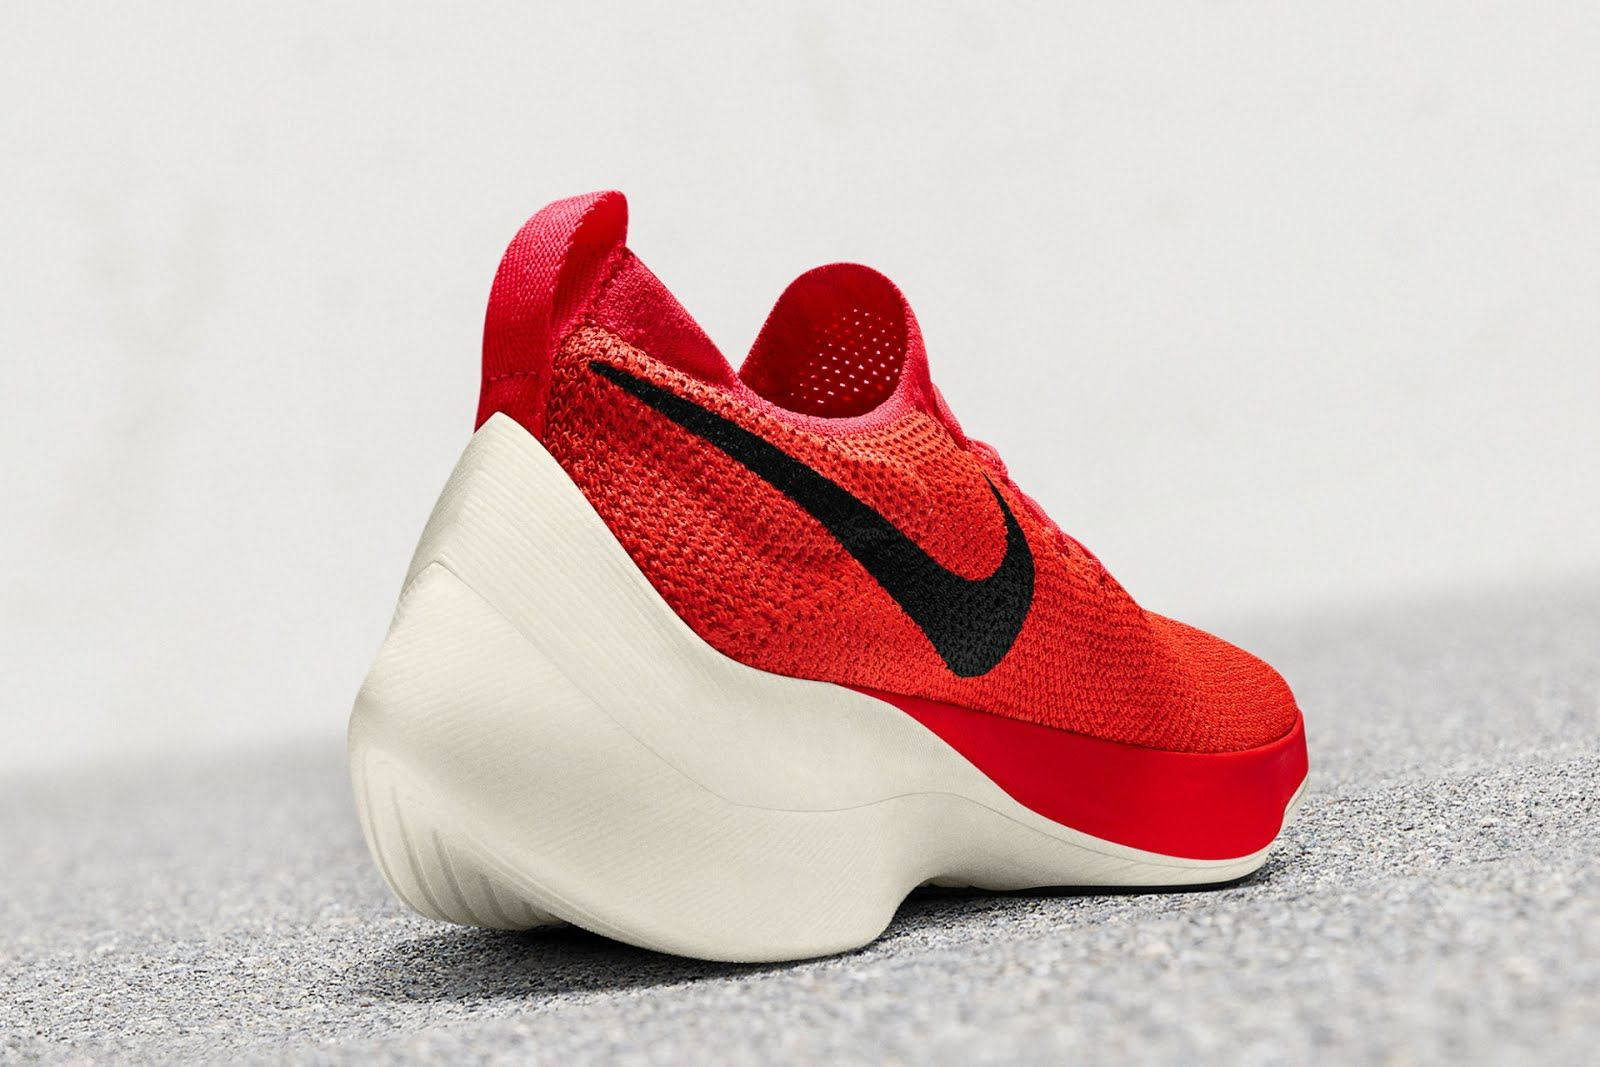 ... release date how to buy the red nike zoom vaporfly elite breaking 2  sneakers that eliud 1897c3d2d